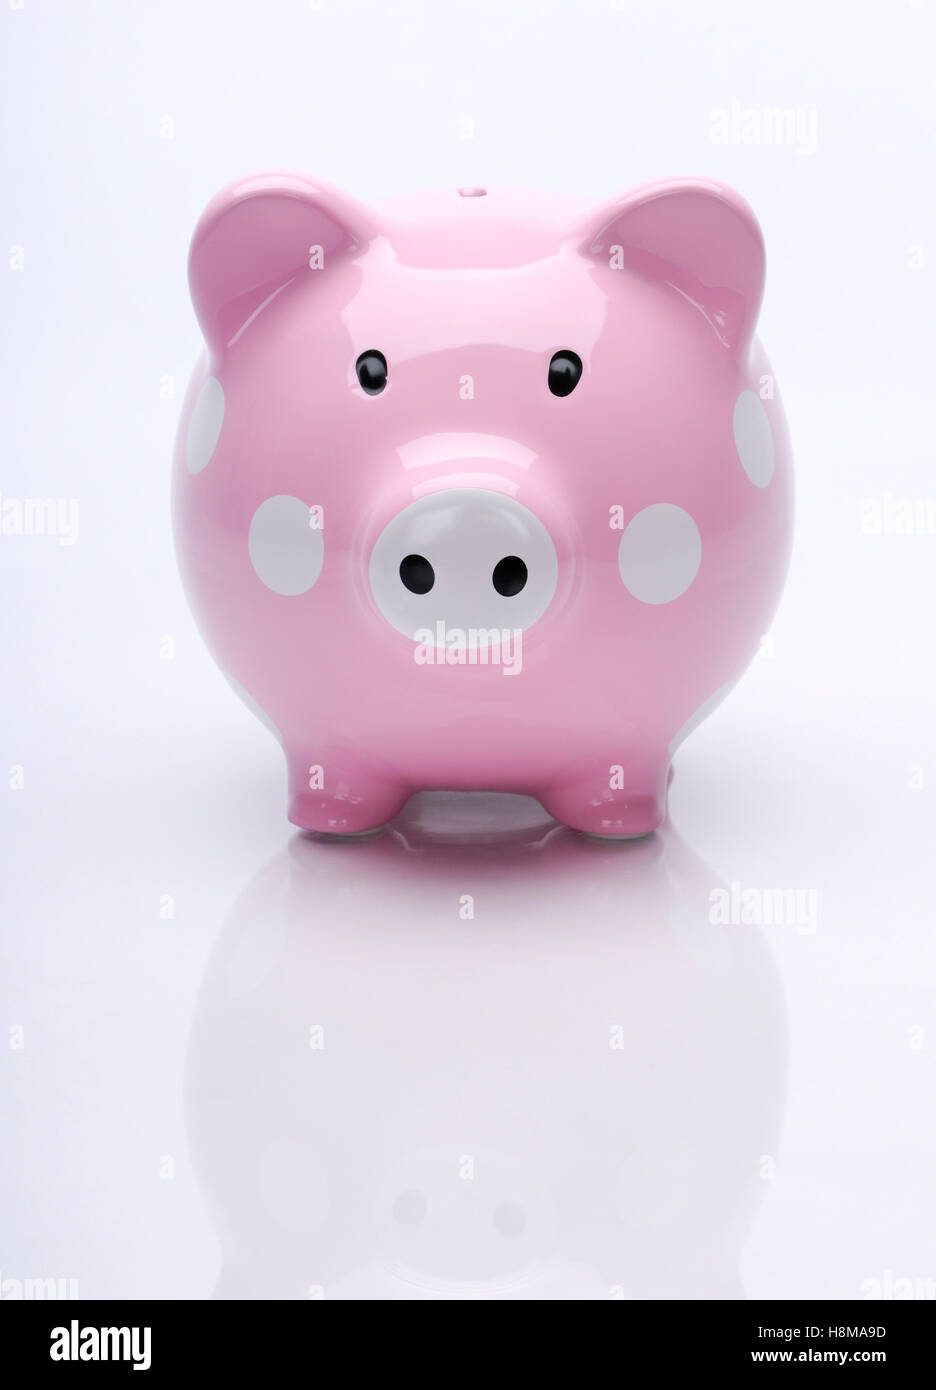 Cute pink piggy bank - Stock Image